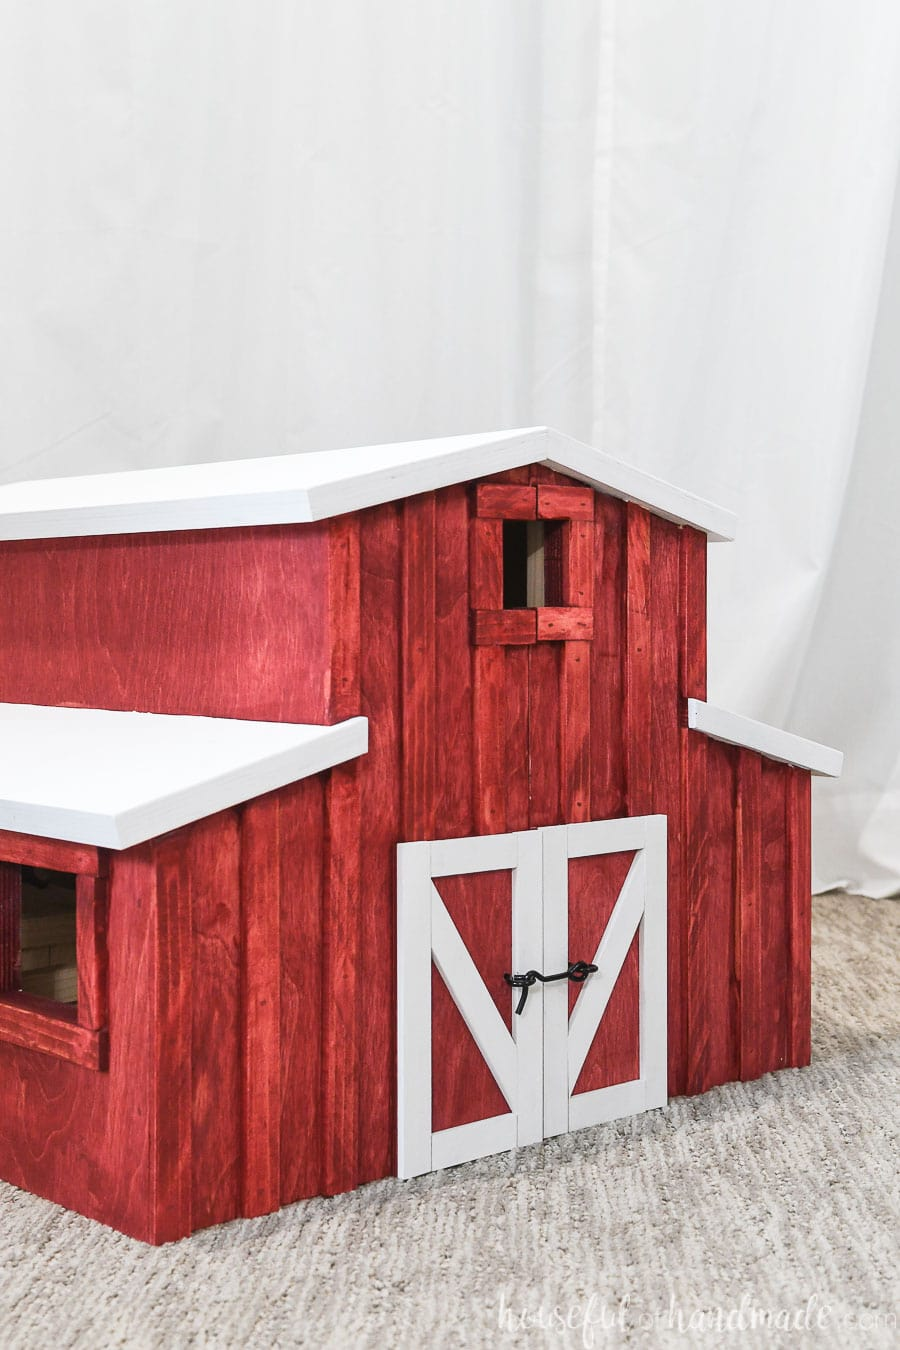 Wooden Toy Barn Build Plans Houseful Of Handmade